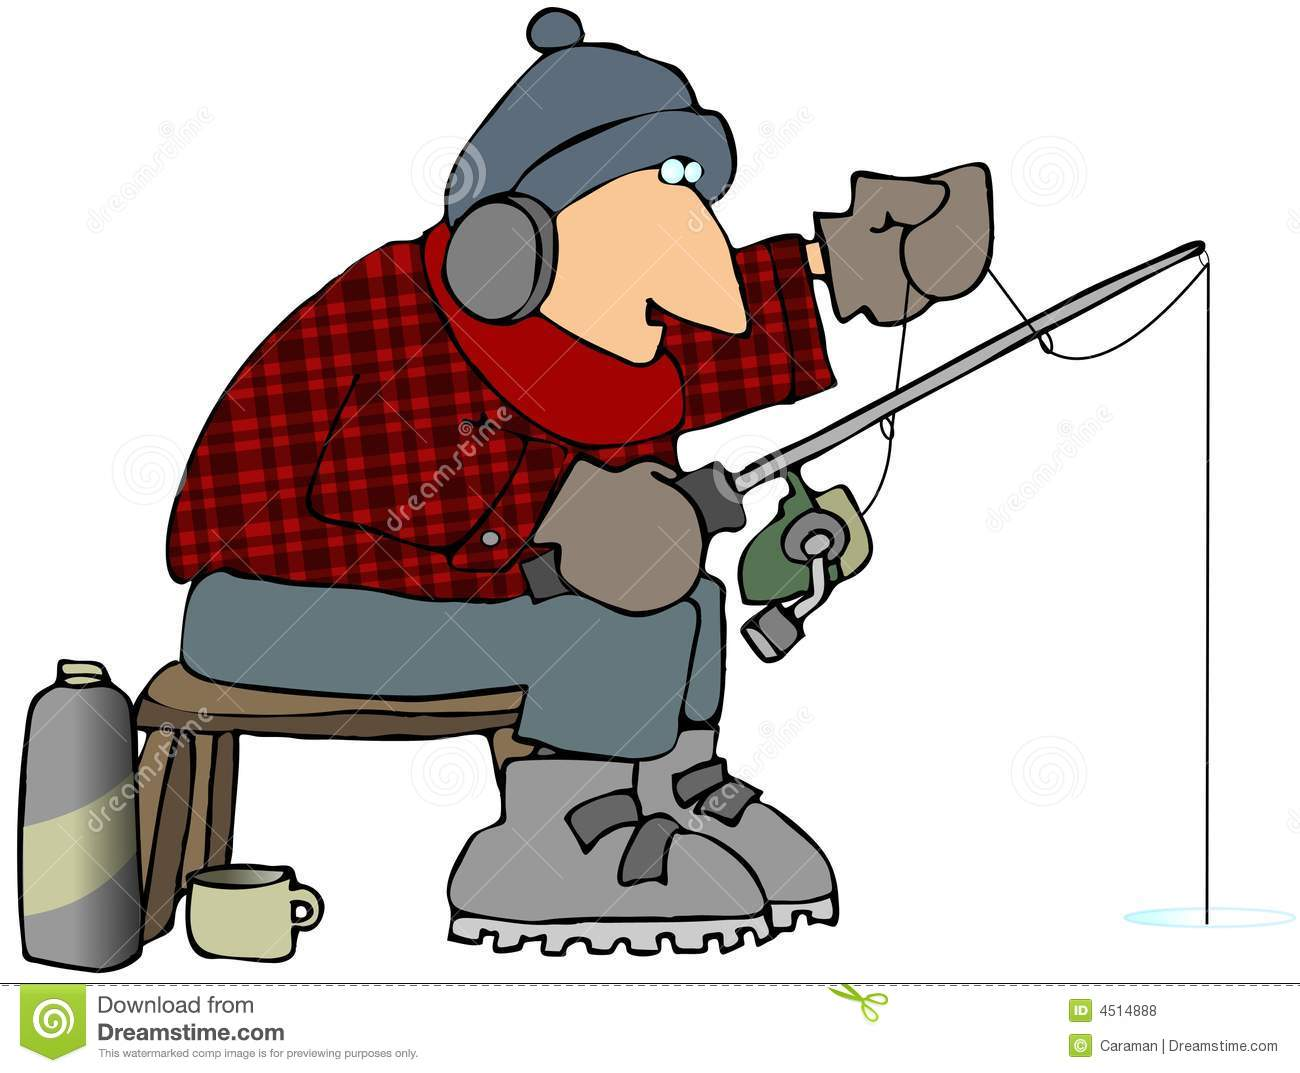 Ice fishing royalty free stock photos image 4514888 for Fishing times free